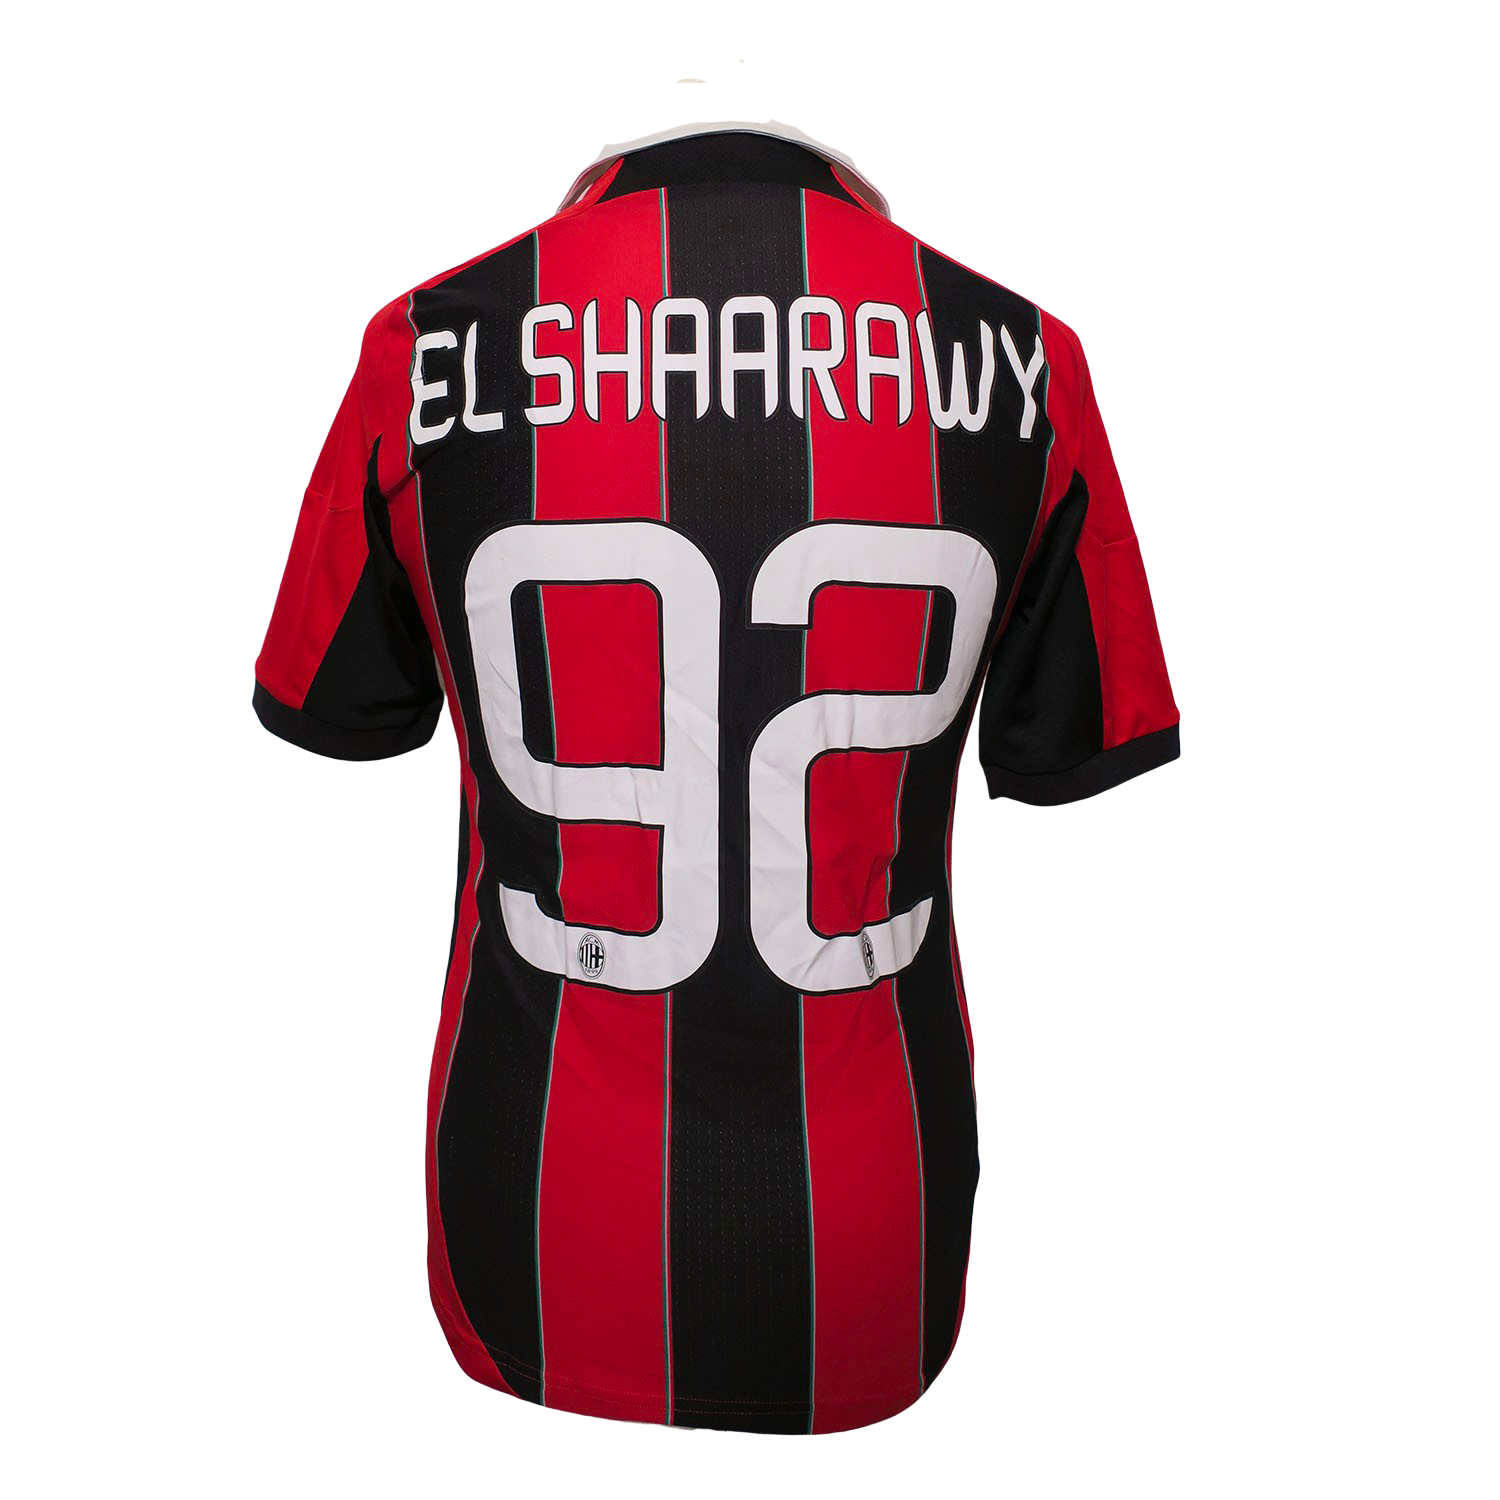 Maillot A.C Milan Home 2012/13 #92 El Shaarawy